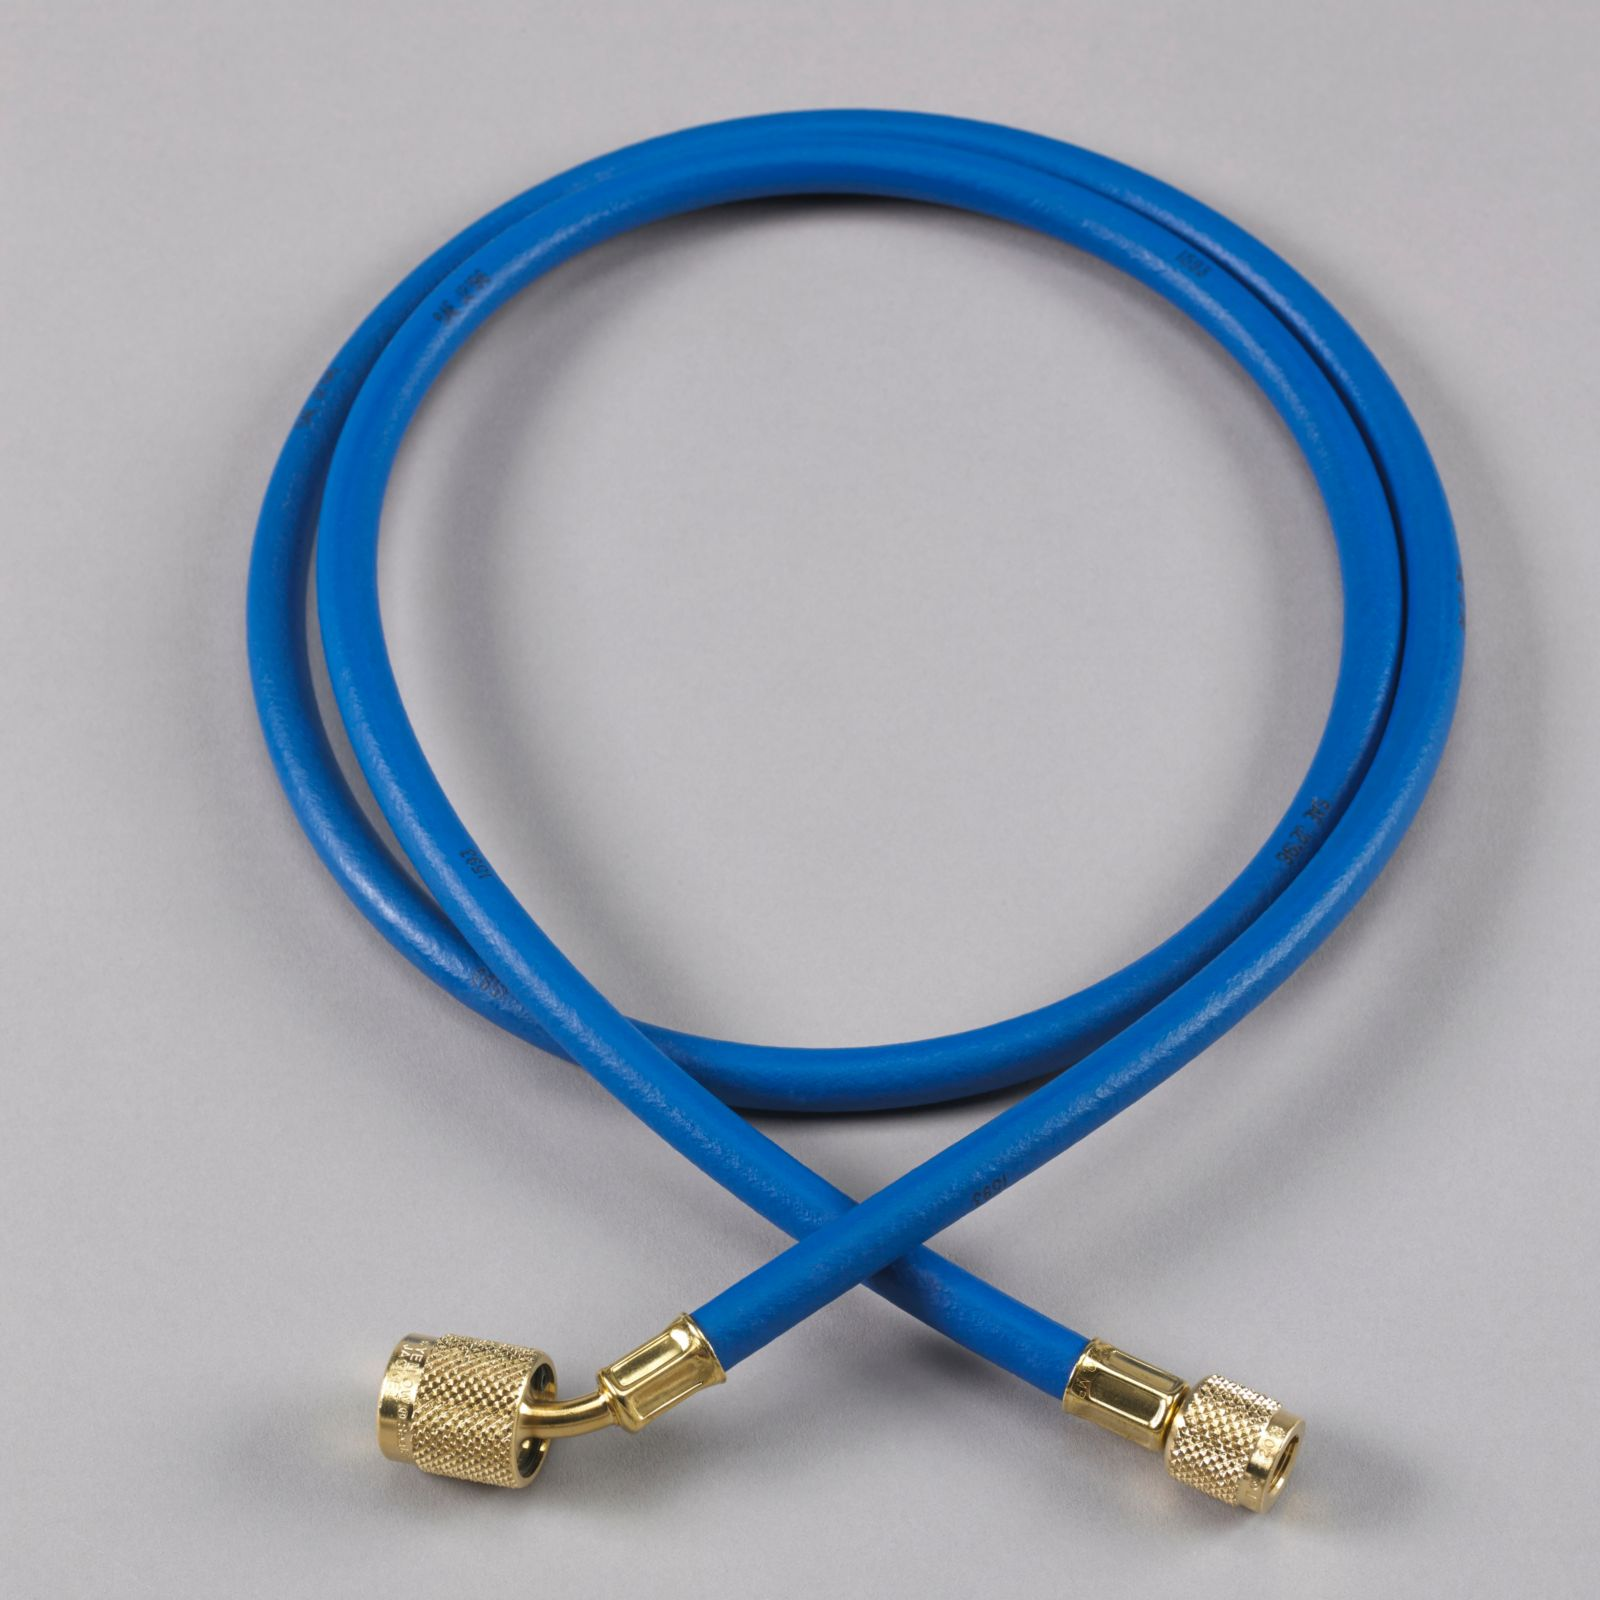 "Yellow Jacket 22260 - Plus II Blue Hose with SealRight Low Loss Anti-Blow Back Fitting 1/4"" X 5'"